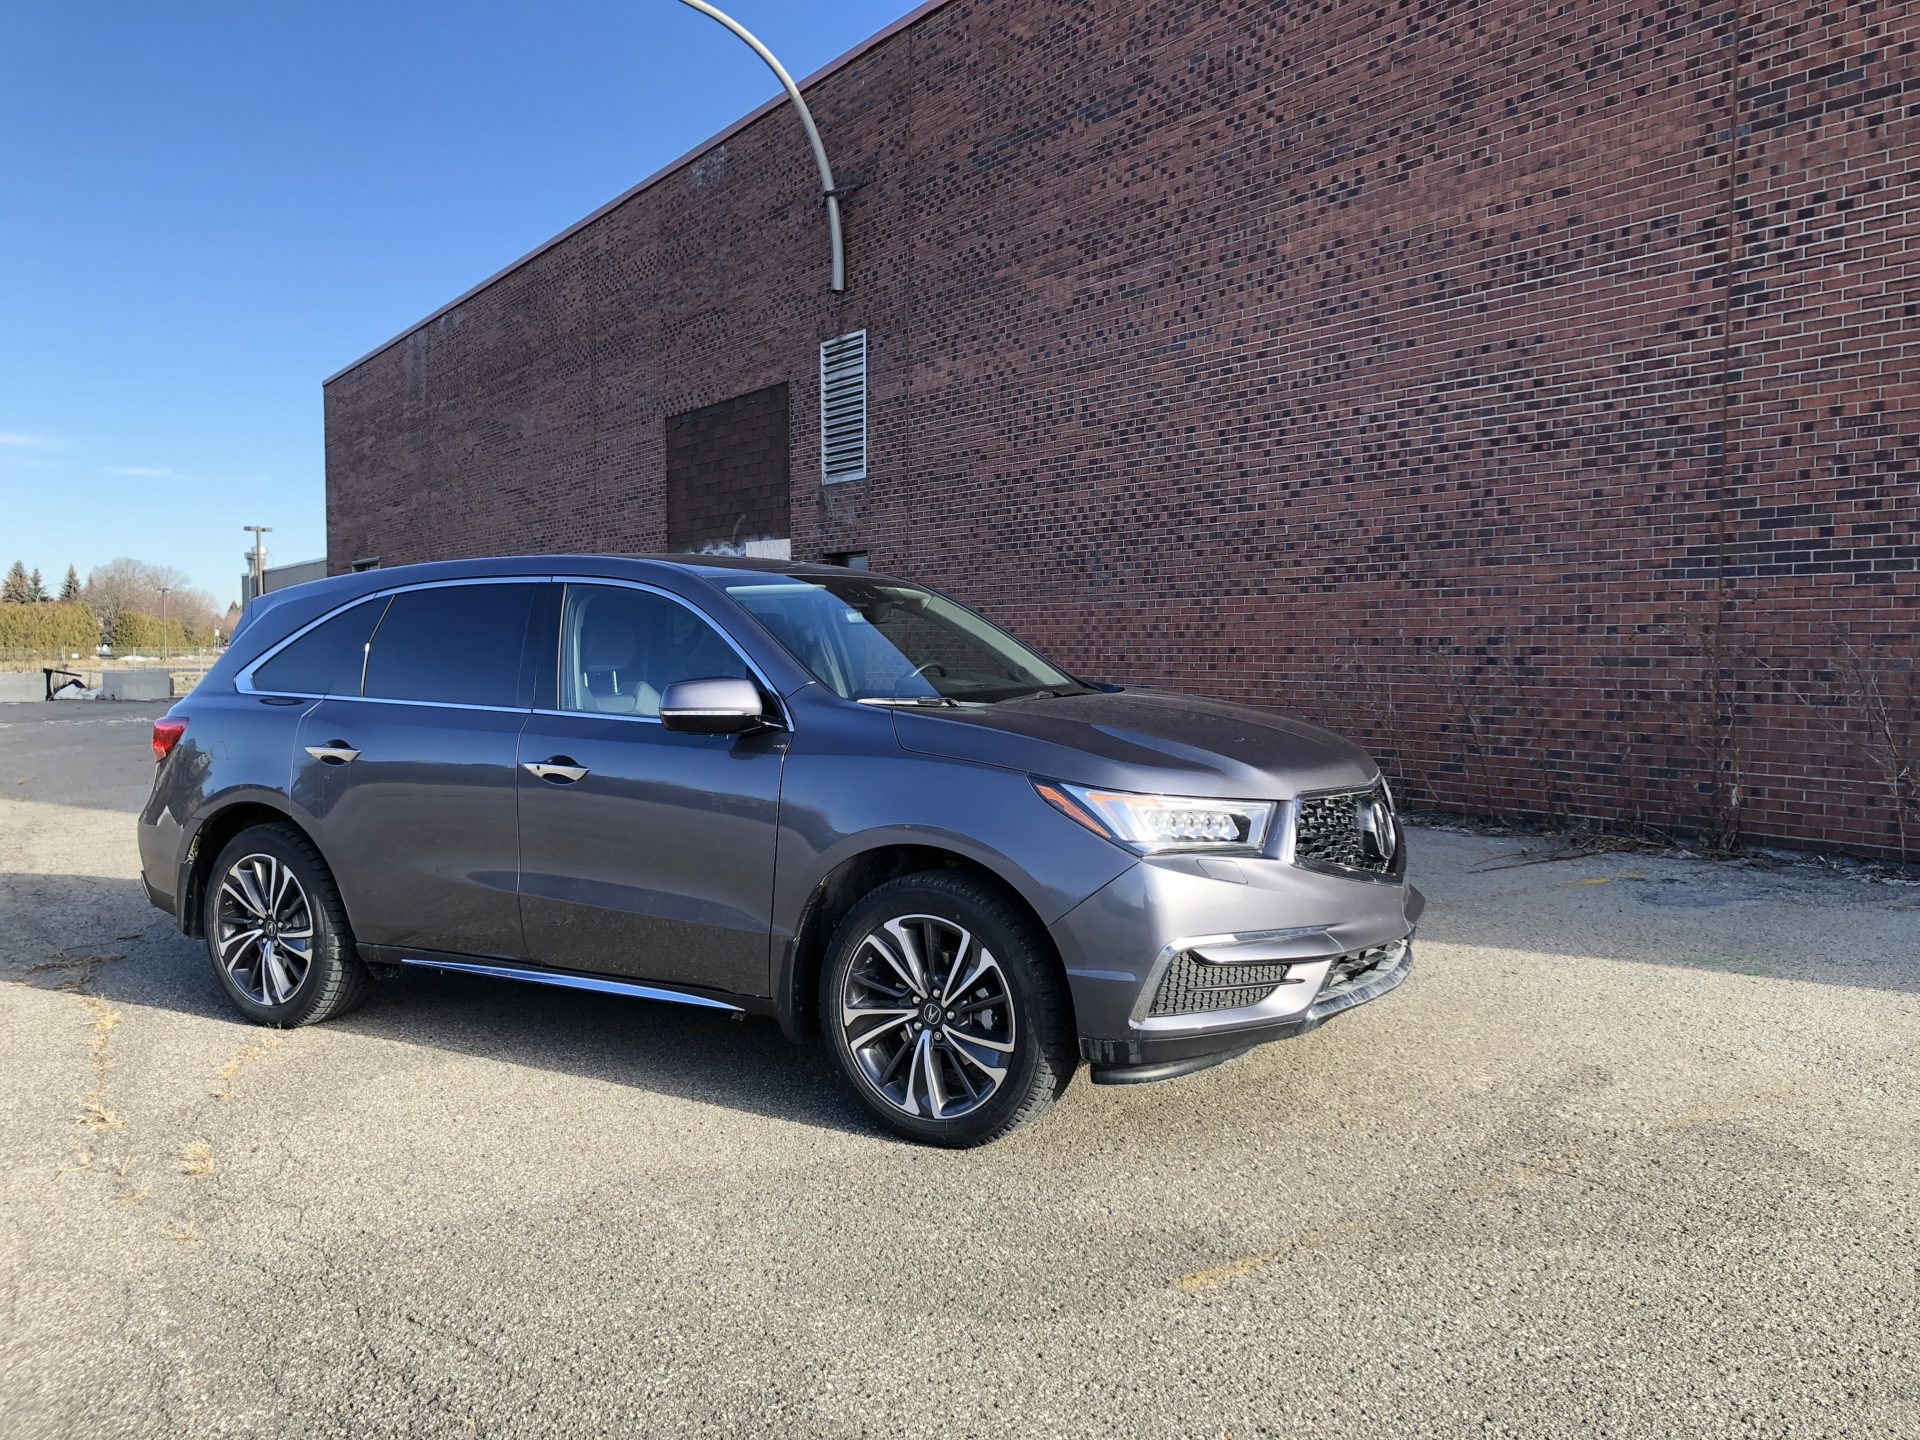 2020 Acura Mdx Review The Previous Go To Still Has Loads Going For It Motor Illustrated